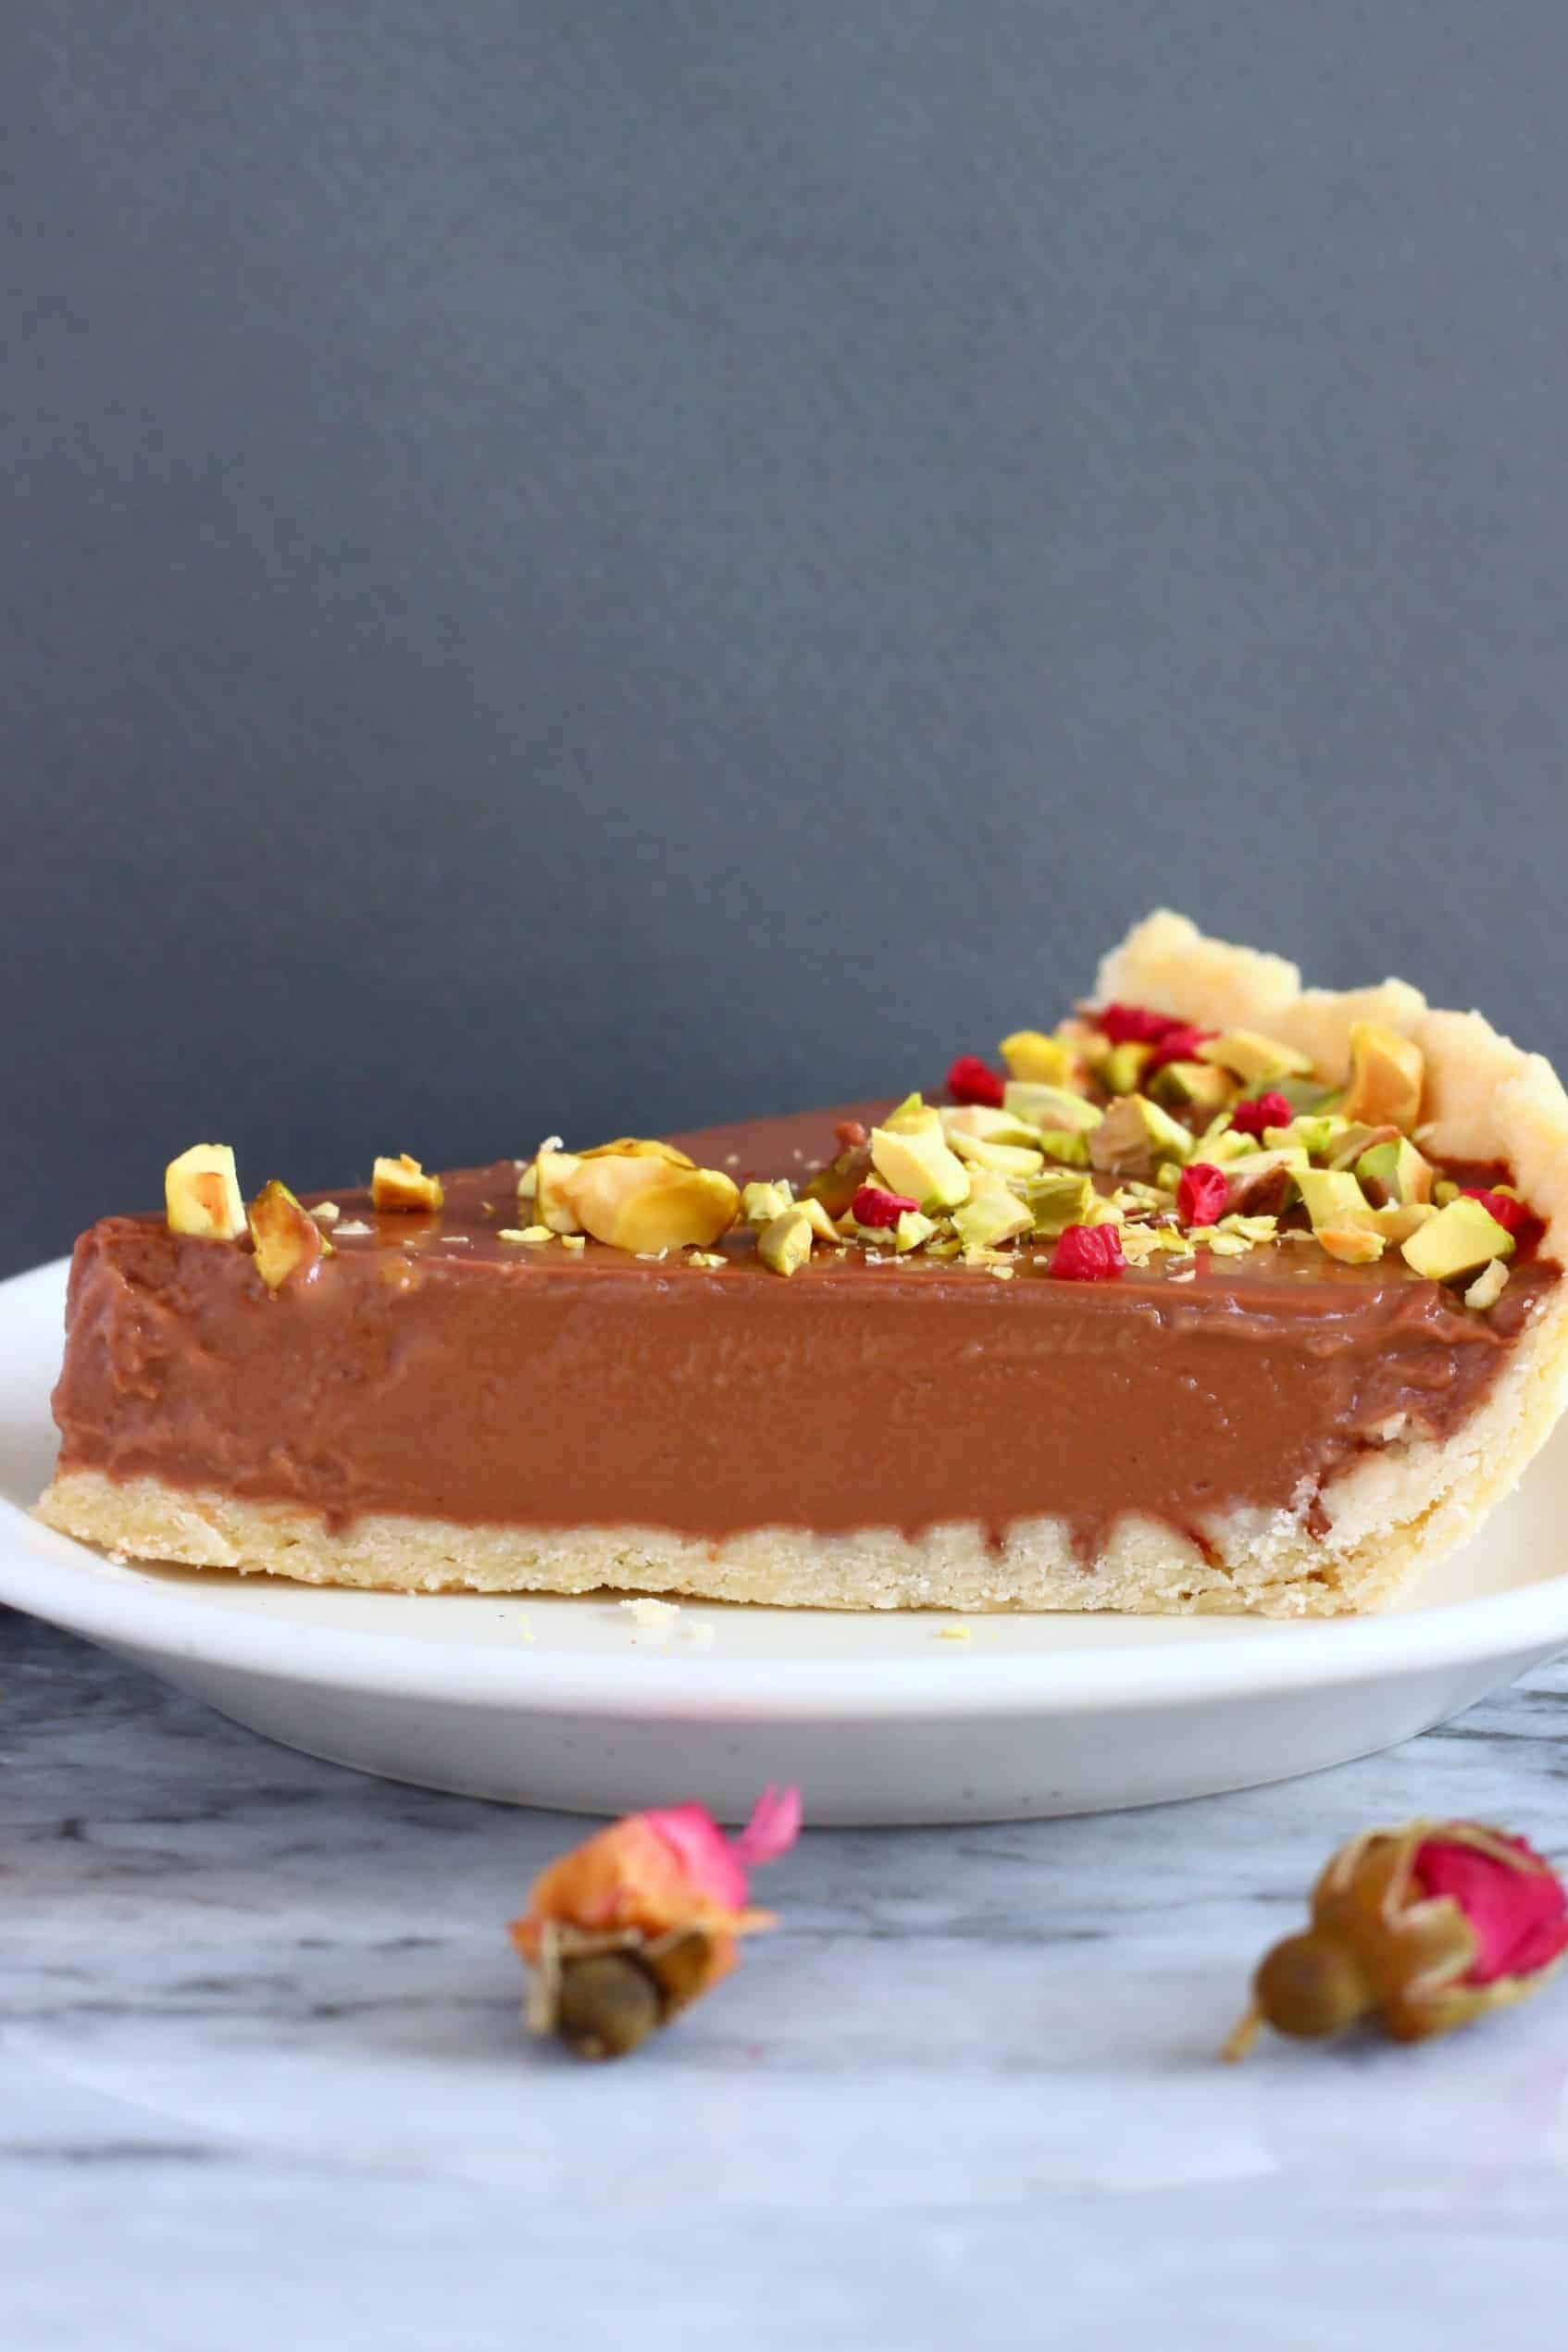 A slice of chocolate tart on a white plate with a grey background